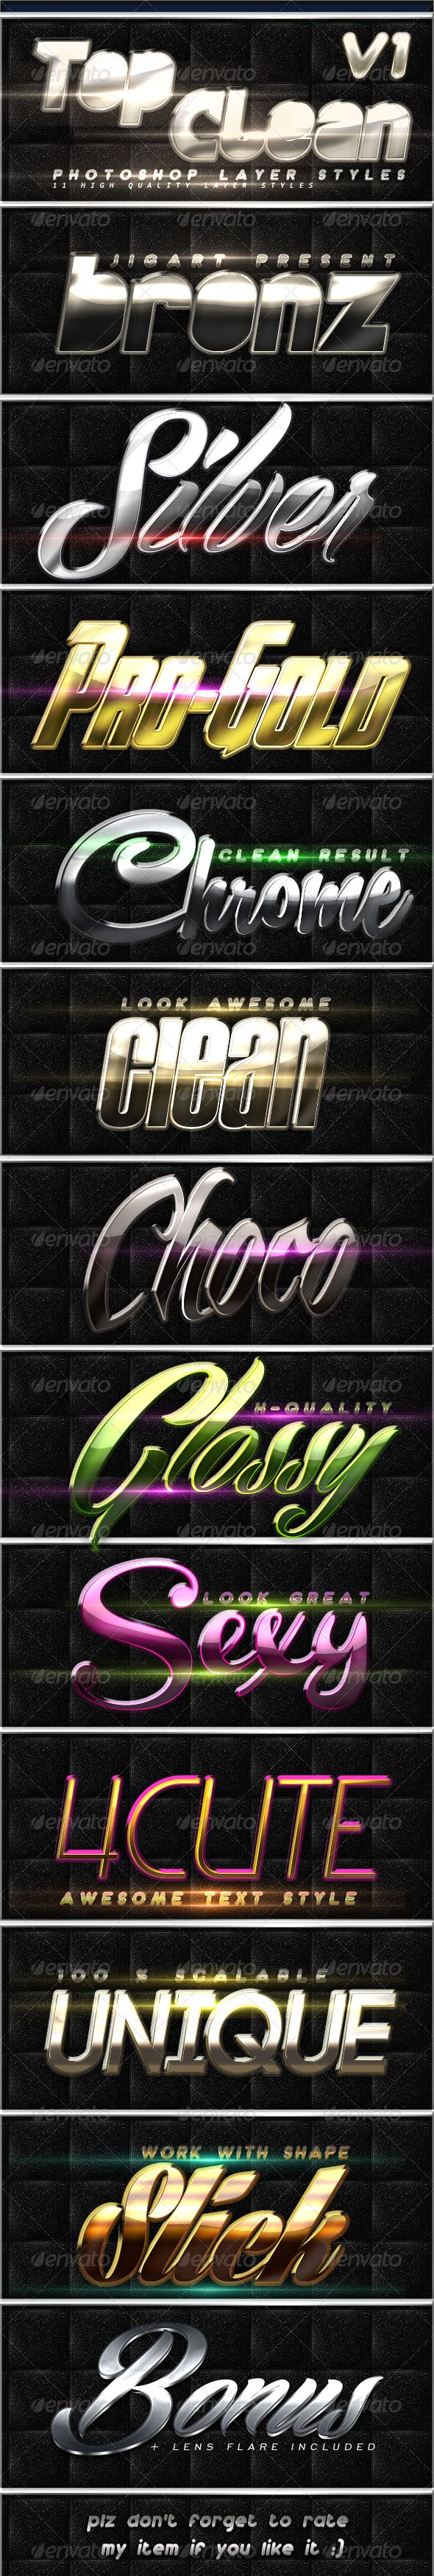 Top Clean Layer Styles V1  #GraphicRiver         -11 Photoshop Styles Includes are : 1 PSD file – 1 ASL file – readme  	 -all Font Used is Free / Link included in help file     Created: 2May13 Add-onFilesIncluded: LayeredPSD #PhotoshopASL MinimumAdobeCSVersion: CS Tags: asl #bronz #chrome #clean #clear #cute #design #effet #fine #fx #glossy #gold #iron #jigart #metal #photoshop #psd #sexy #silver #soft